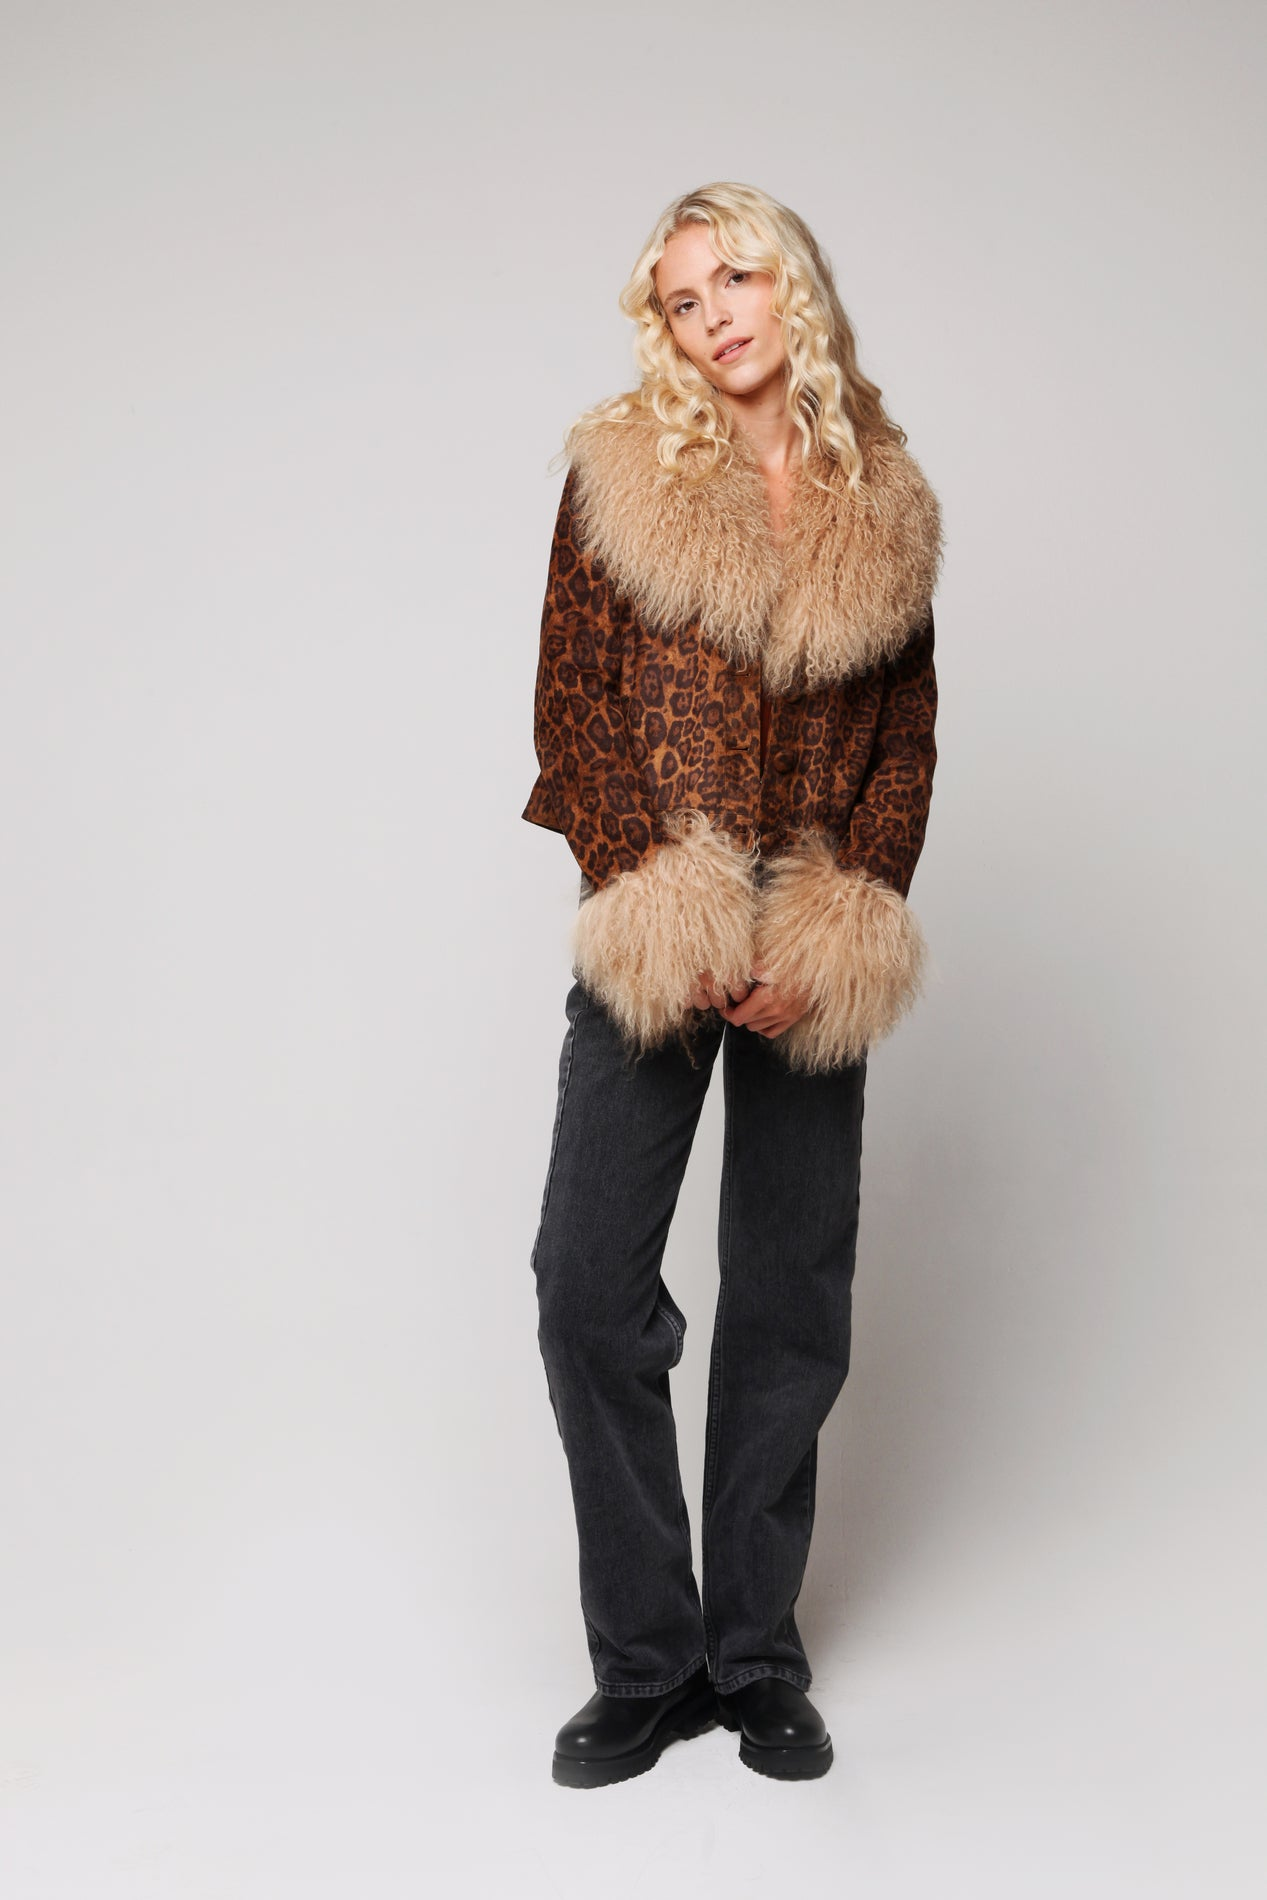 Petite Penny Jacket Leopard - Model Shot